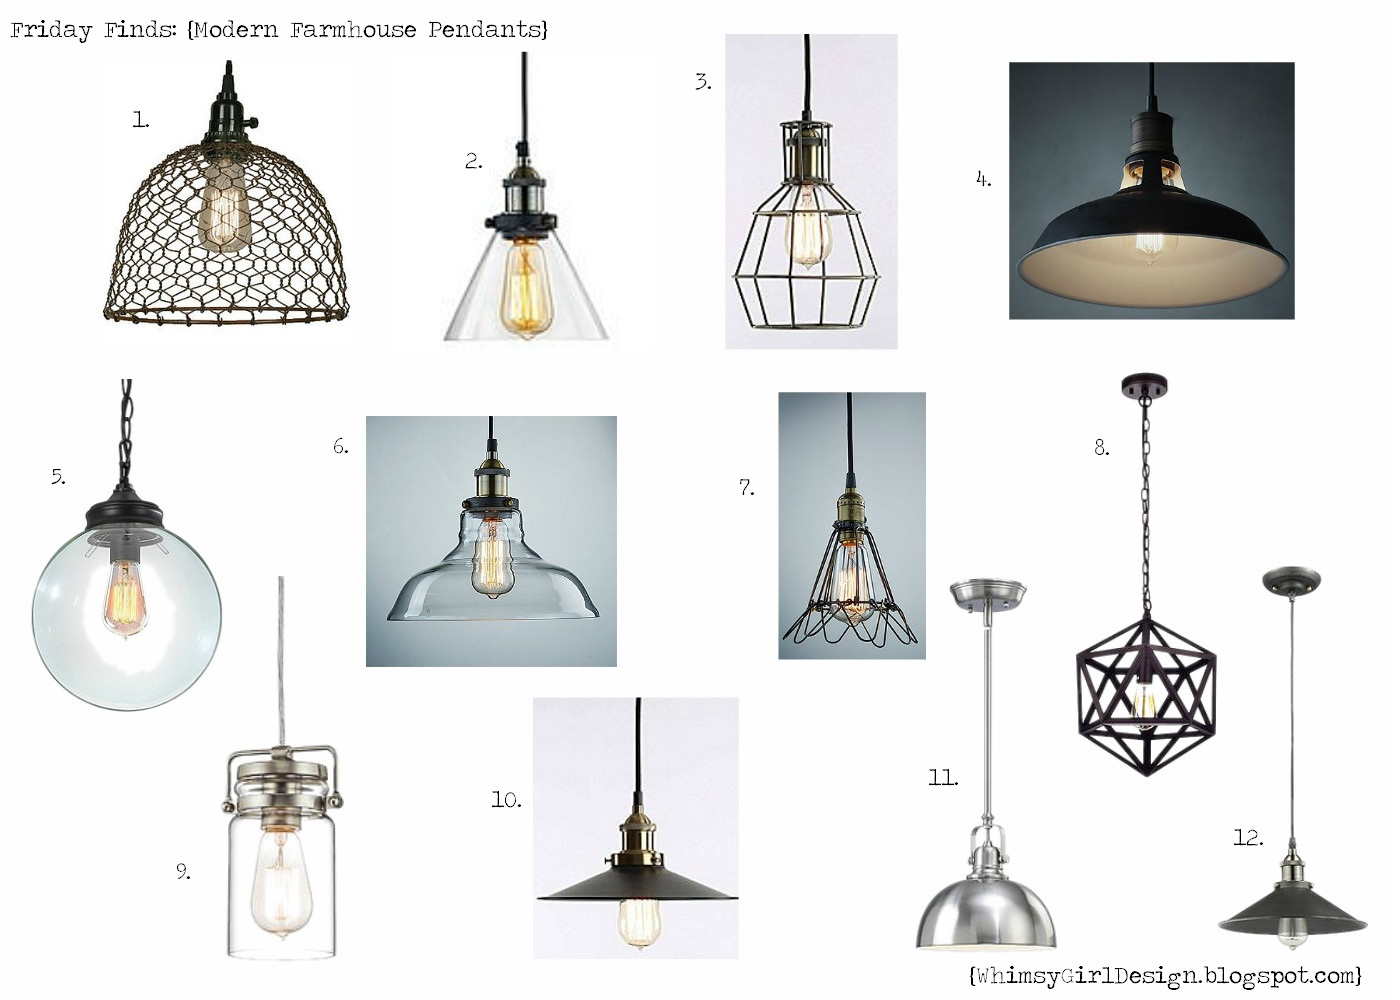 Whimsy girl friday finds modern farmhouse pendant lights friday finds modern farmhouse pendant lights mozeypictures Gallery